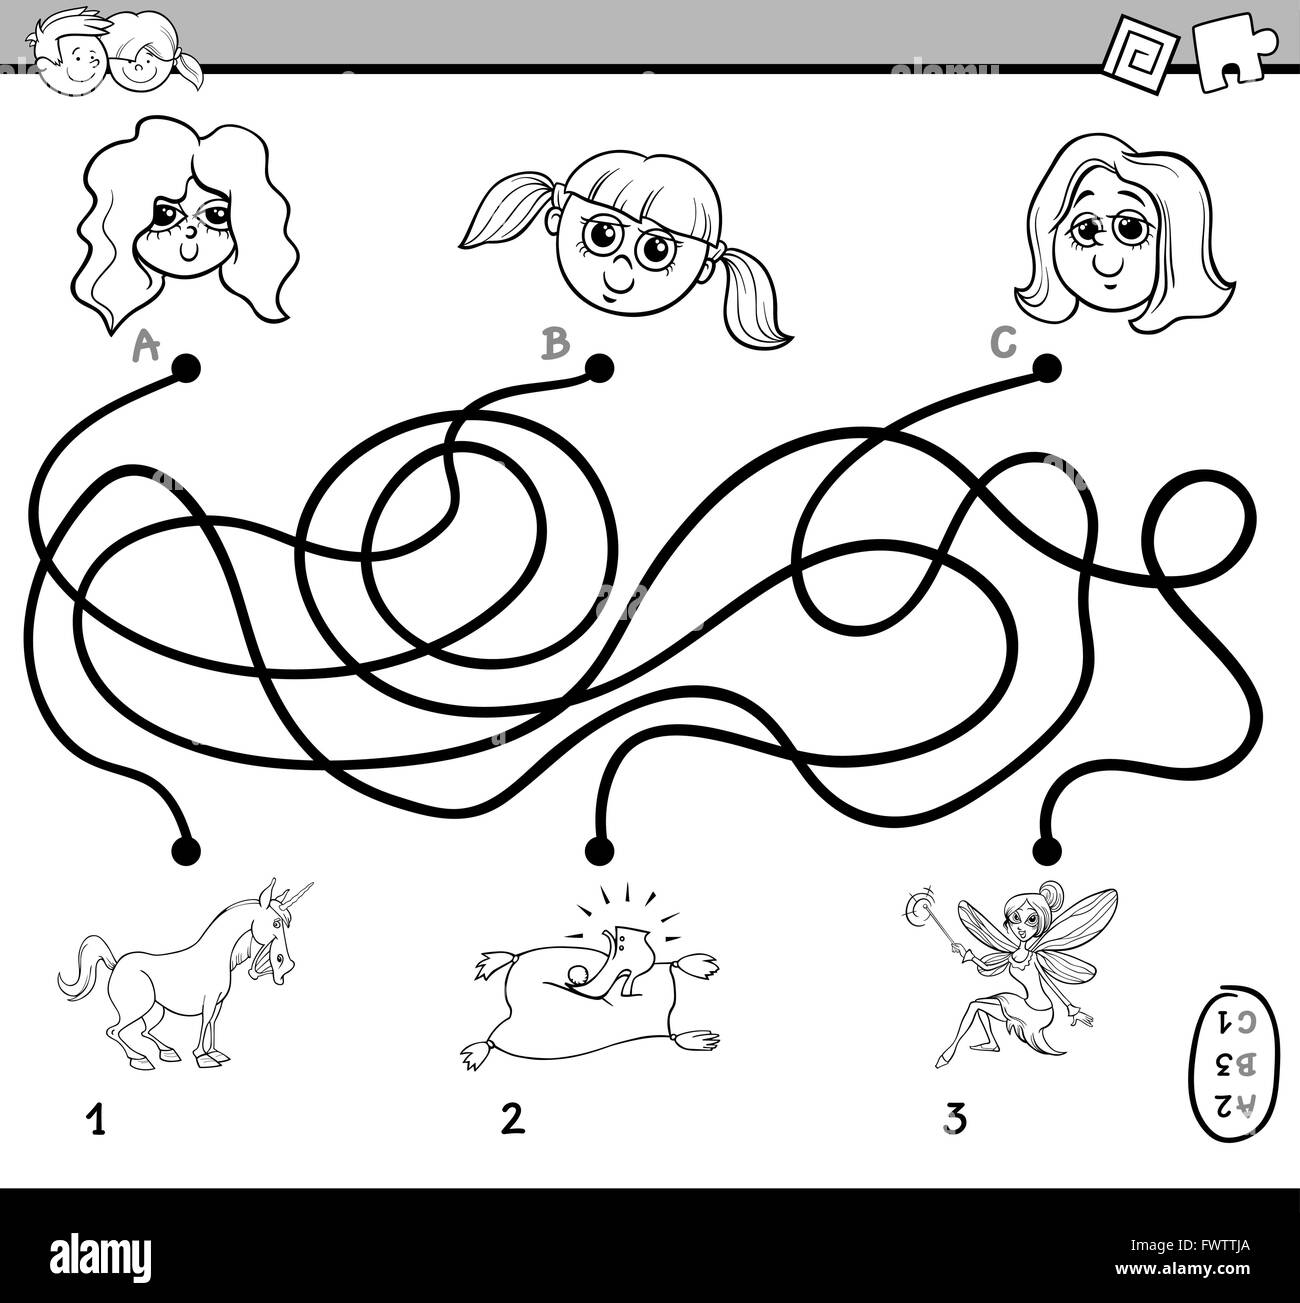 Childrens educational coloring activity book - Black And White Cartoon Illustration Of Educational Paths Or Maze Puzzle Activity For Preschool Children With Little Girls Color